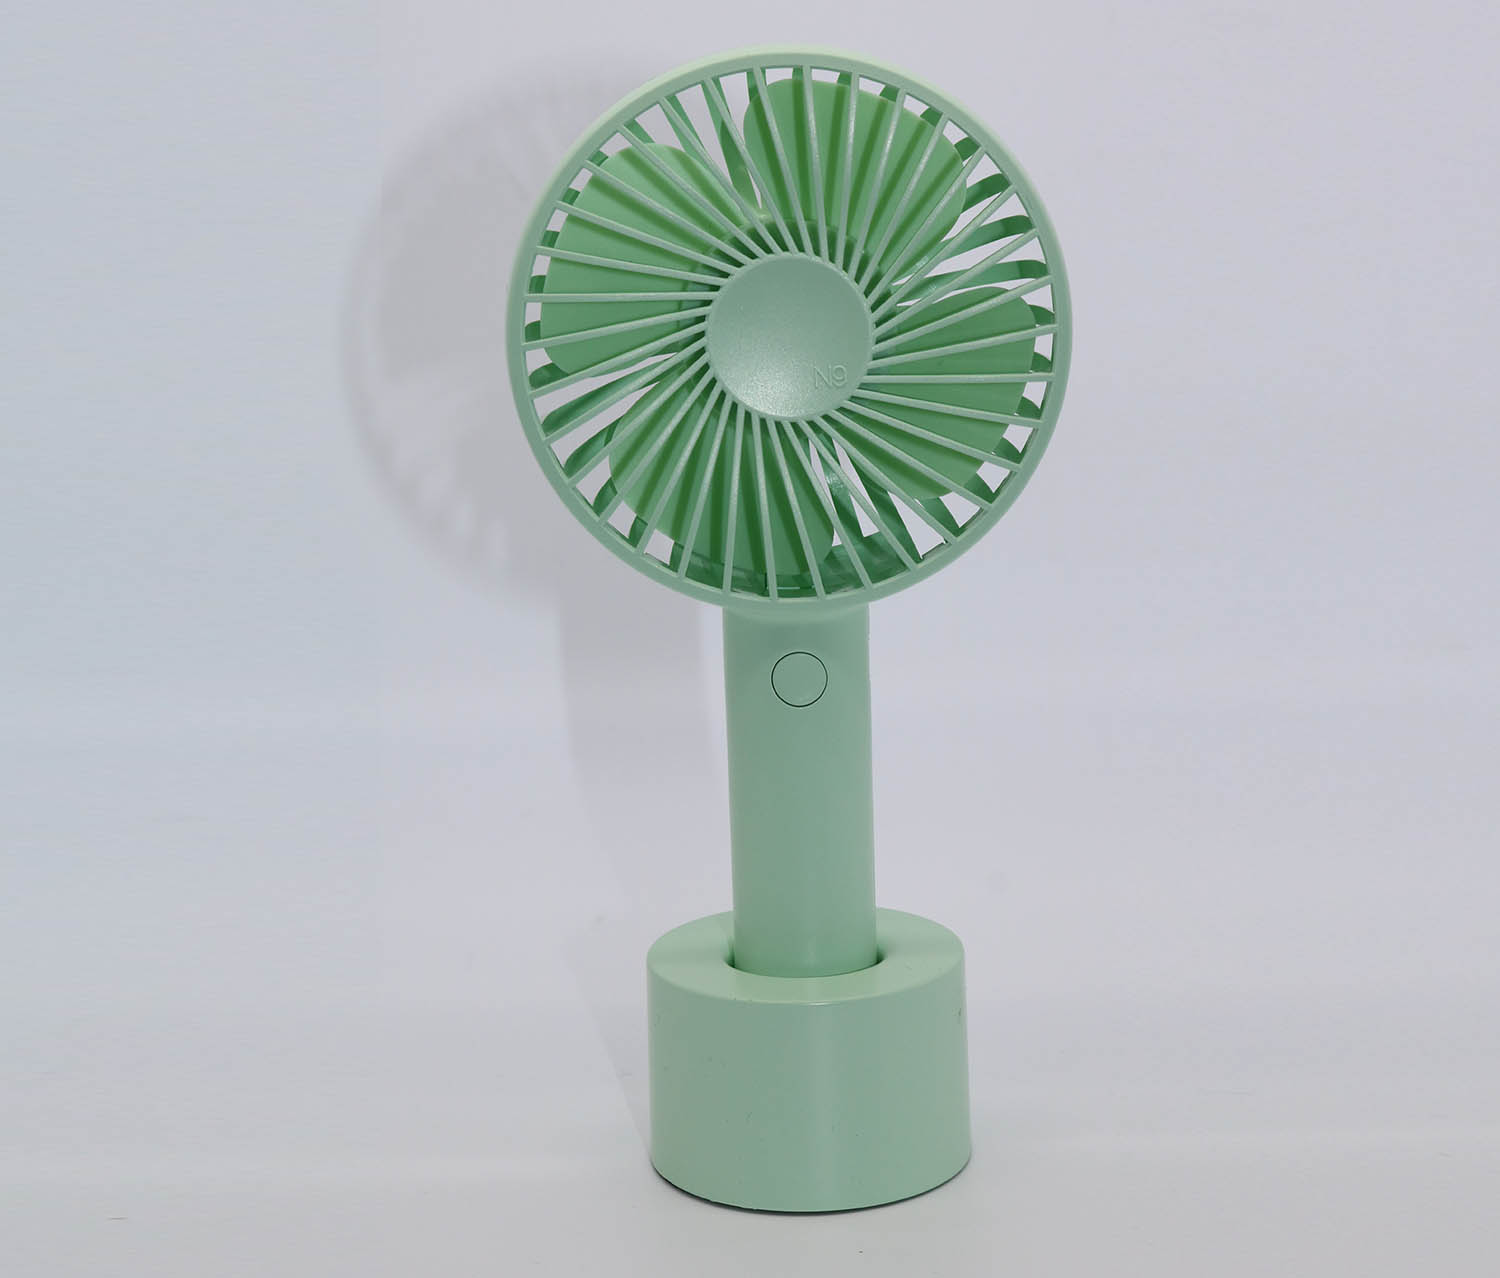 Handheld Electric Fan, Green